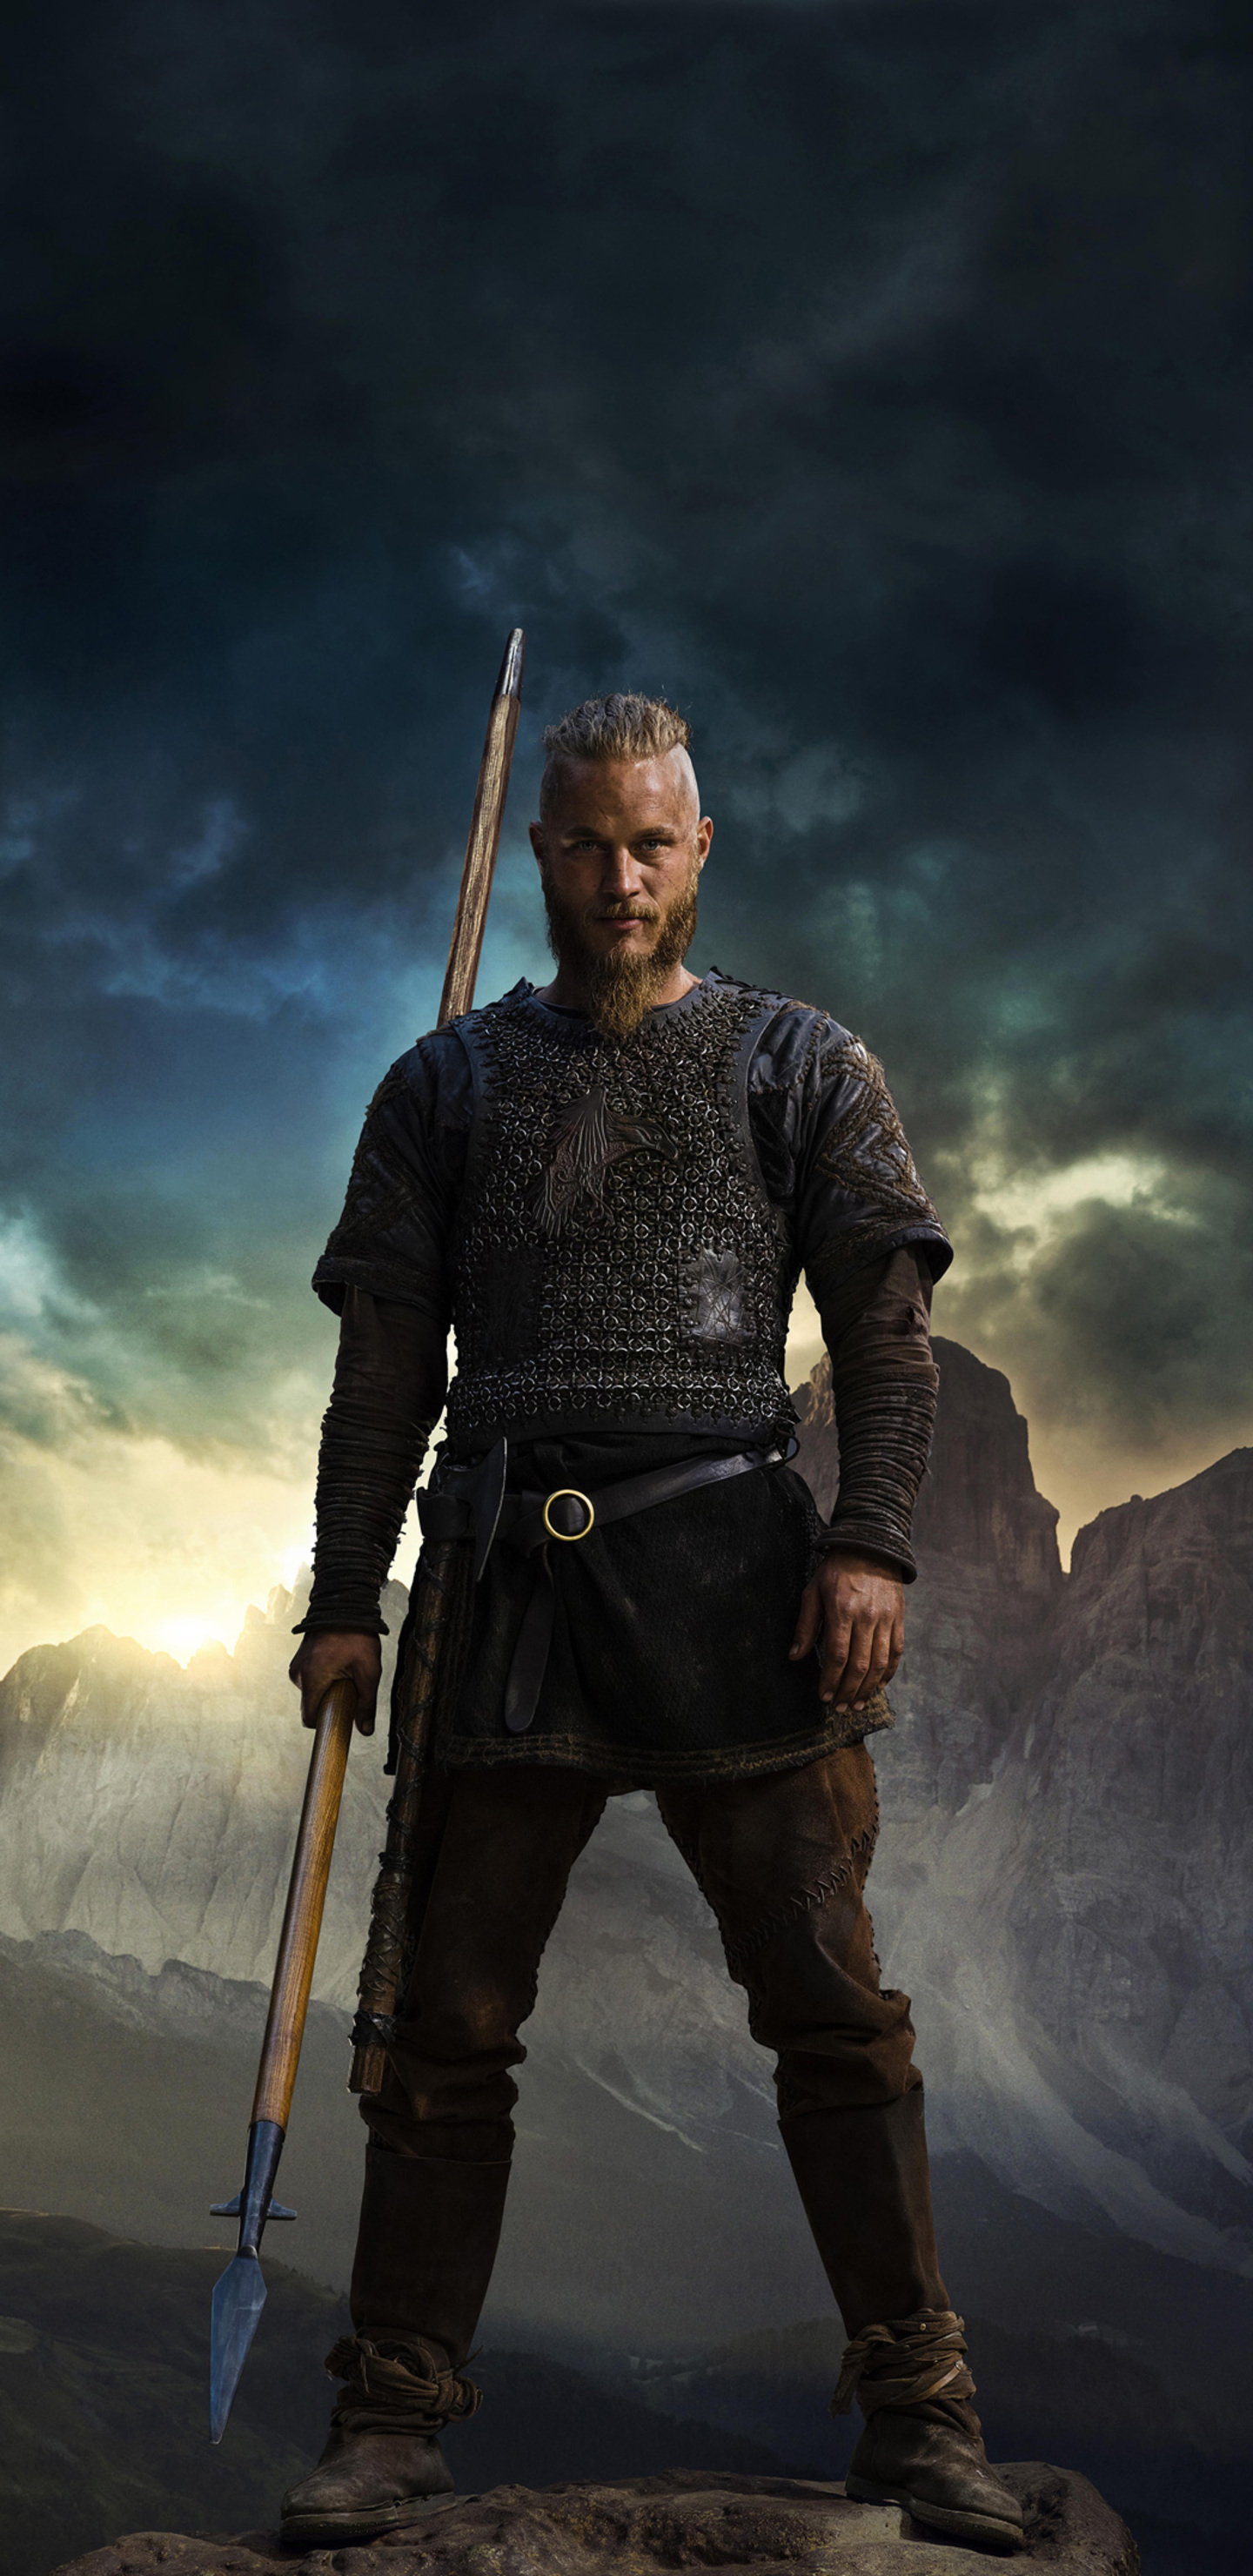 1440x2960 vikings ragnar 4k samsung galaxy note 9 8 s9 s8 - Samsung s9 wallpaper 4k ...